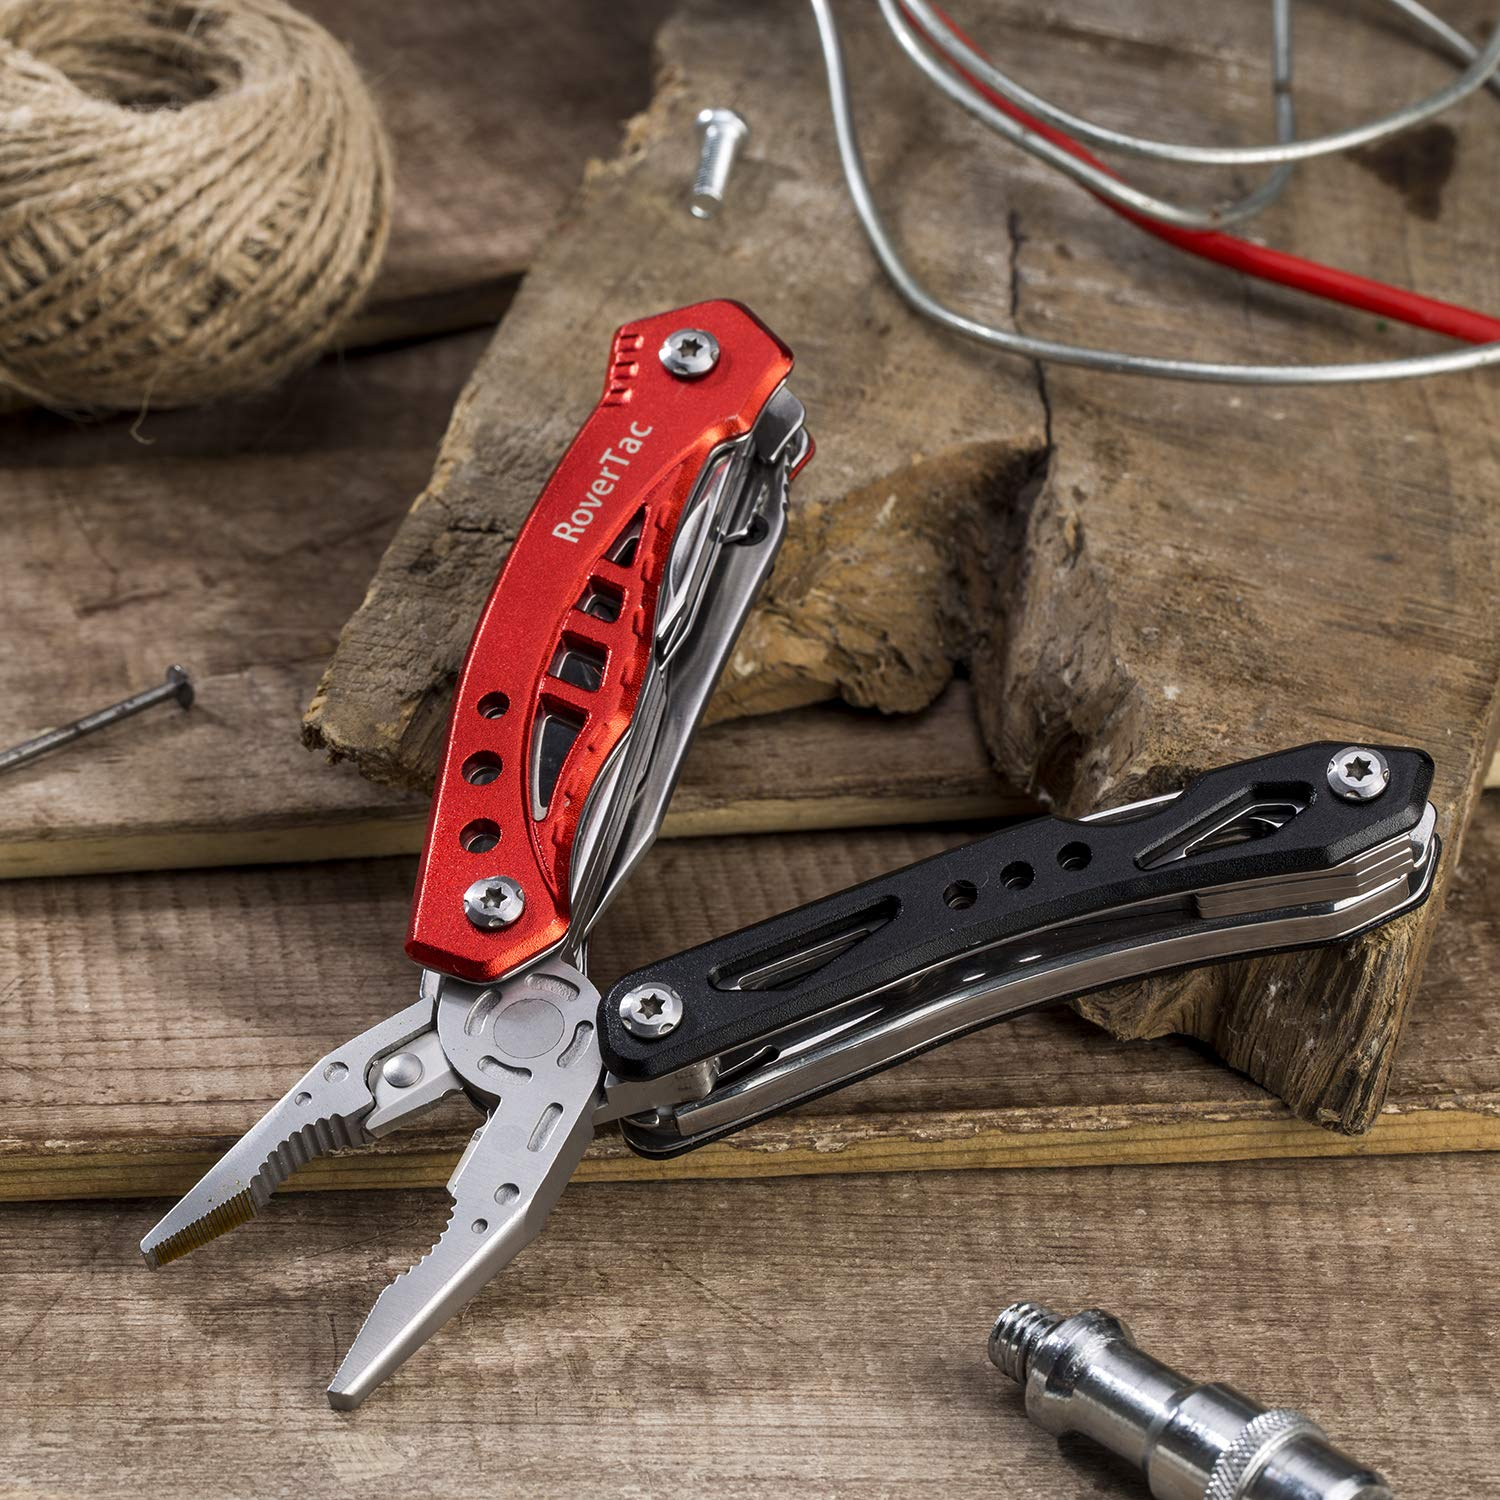 12 in 1 Multi tool Pliers RoverTac Pocket Knife with Durable Nylon Sheath, Multitool with Pliers, Bottle Opener, Screwdriver, Saw-Perfect for Outdoor, Survival, Camping, Fishing, Hiking (red) by RoverTac (Image #5)